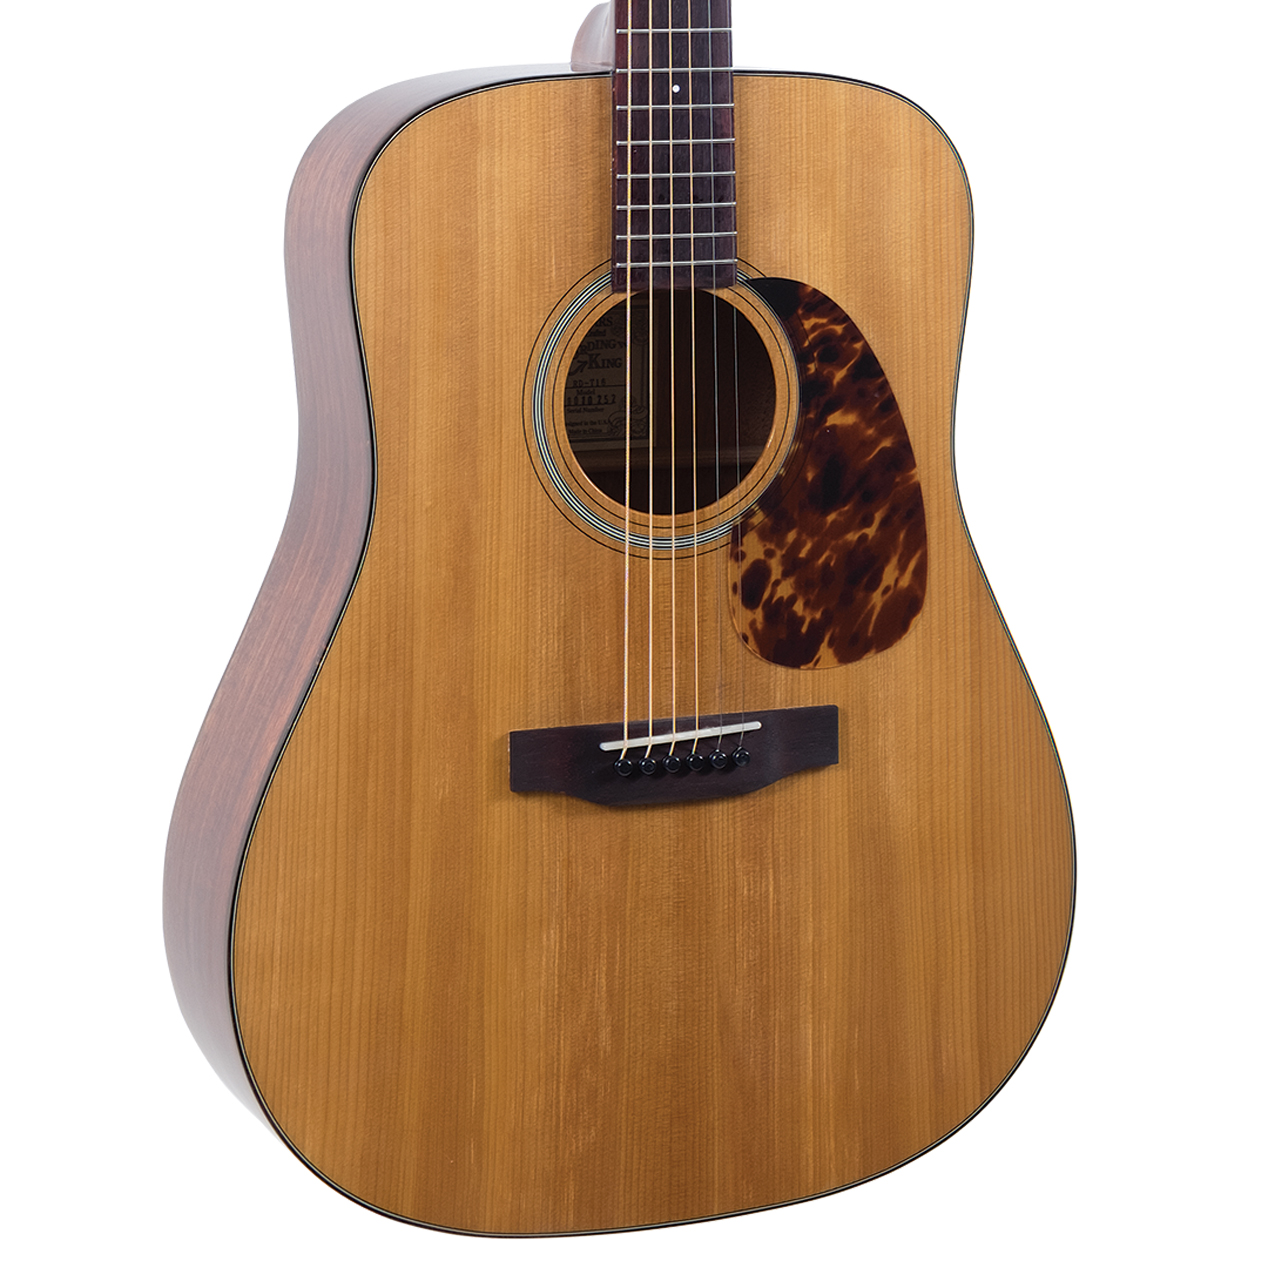 RD-T16 Recording King Torrefied Adirondack Spruce Top - Dreadnought